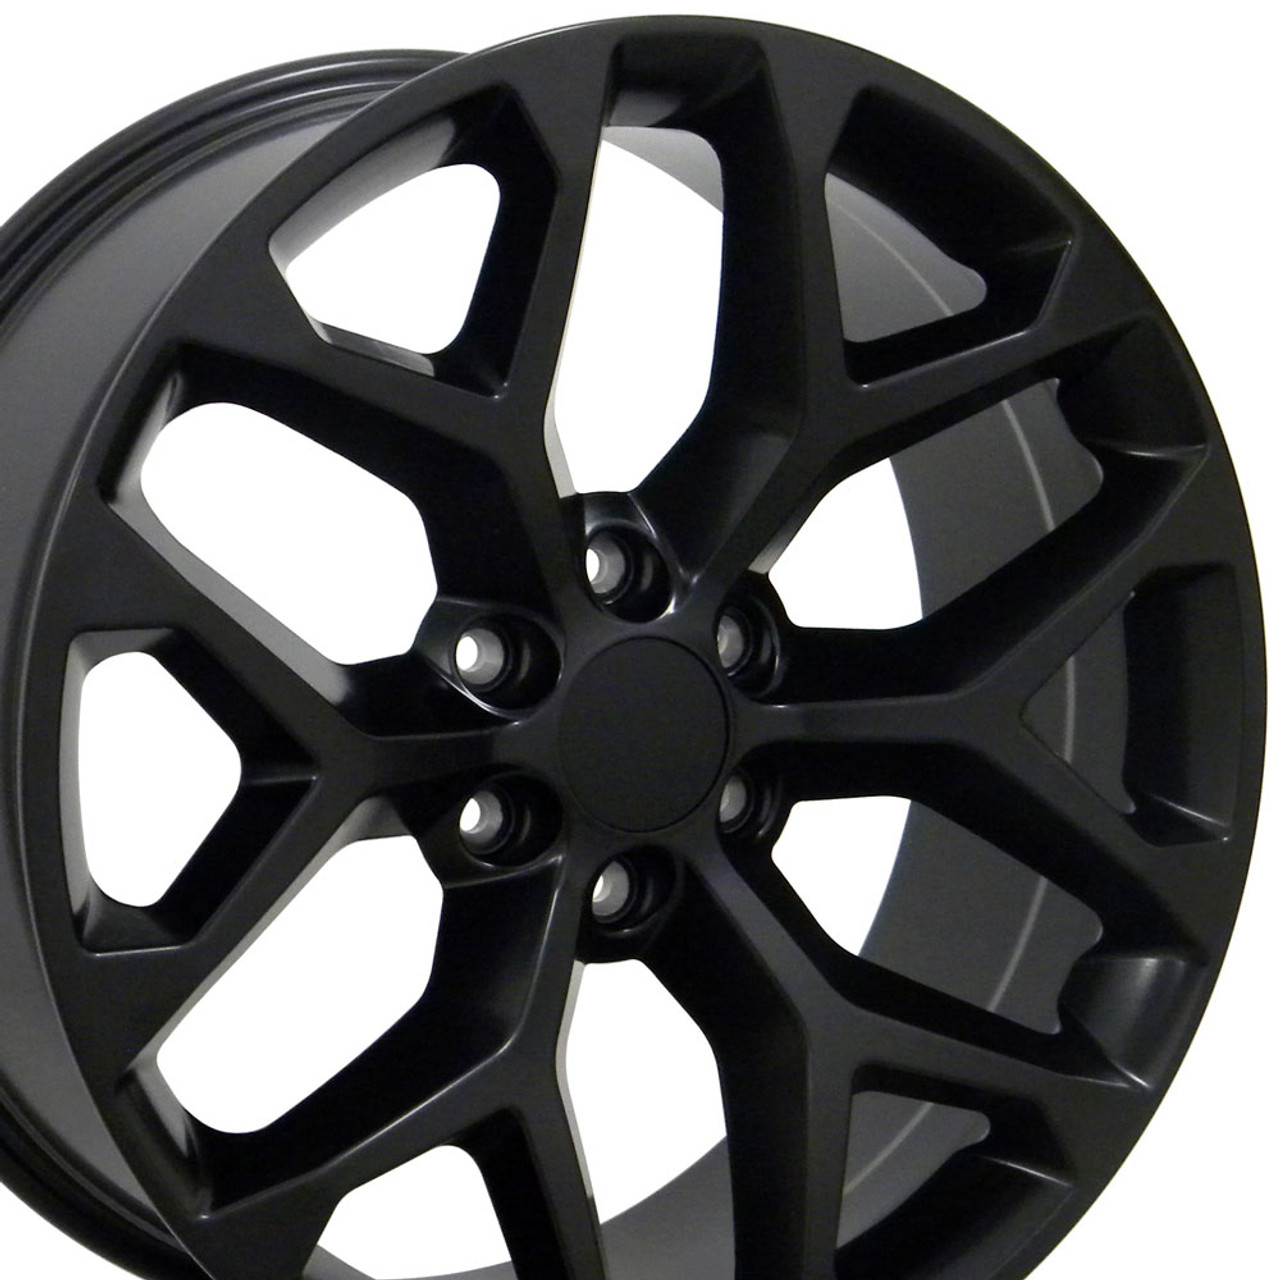 detail lt suburban premium wheels navigation chevrolet used heated tires leather new